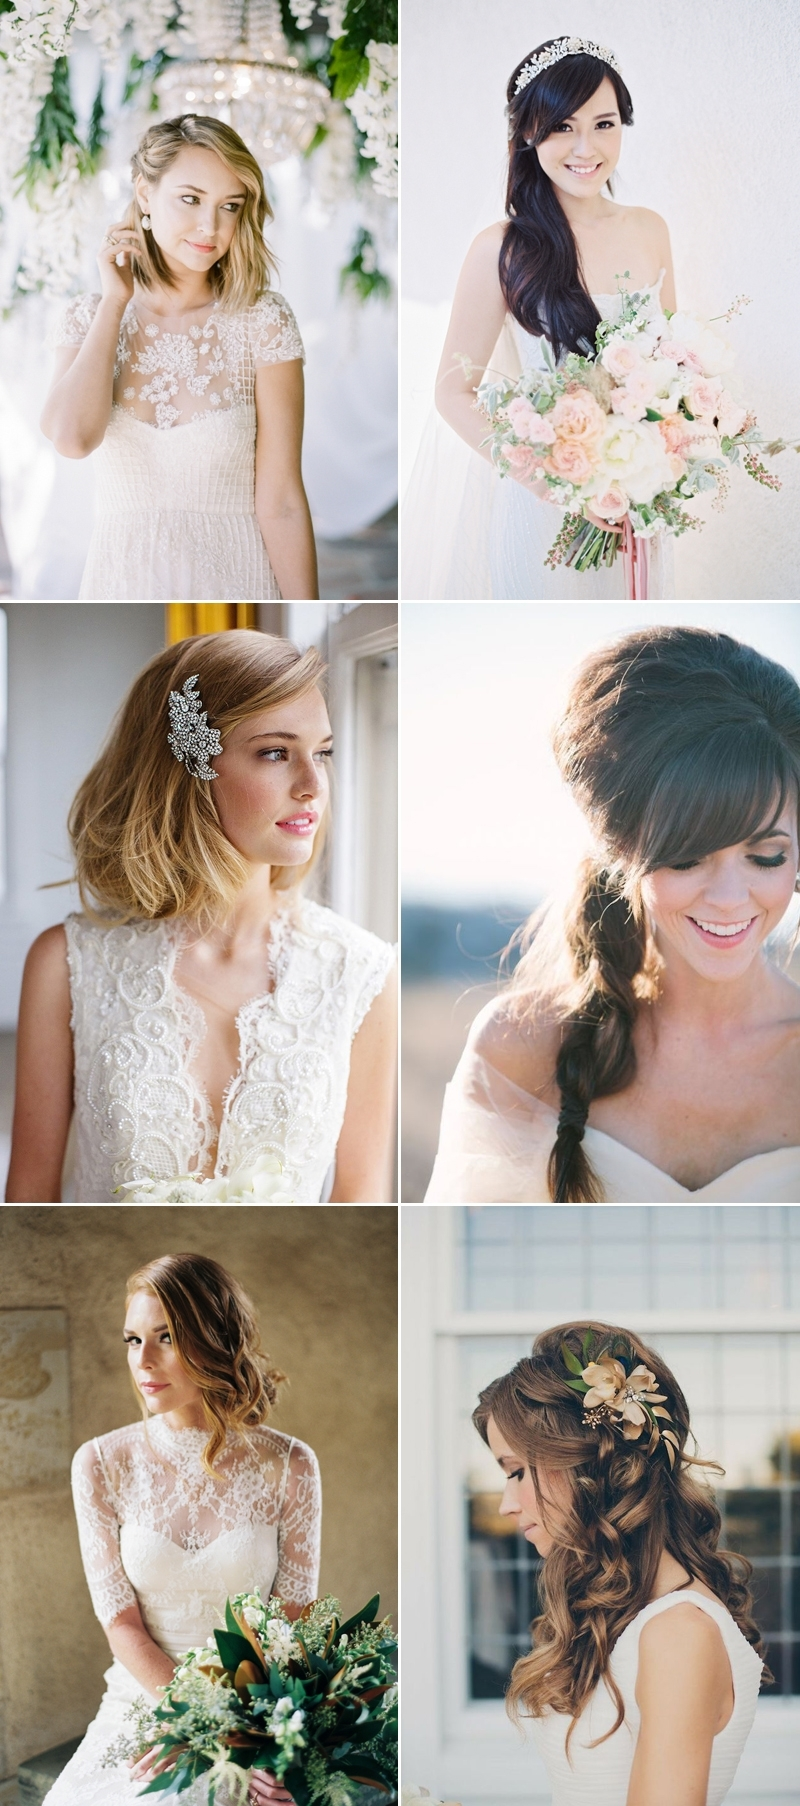 How To Find The Right Wedding Day Hairstyle? The Most Flattering Pertaining To Fashionable Wedding Hairstyles For Square Face (View 14 of 15)